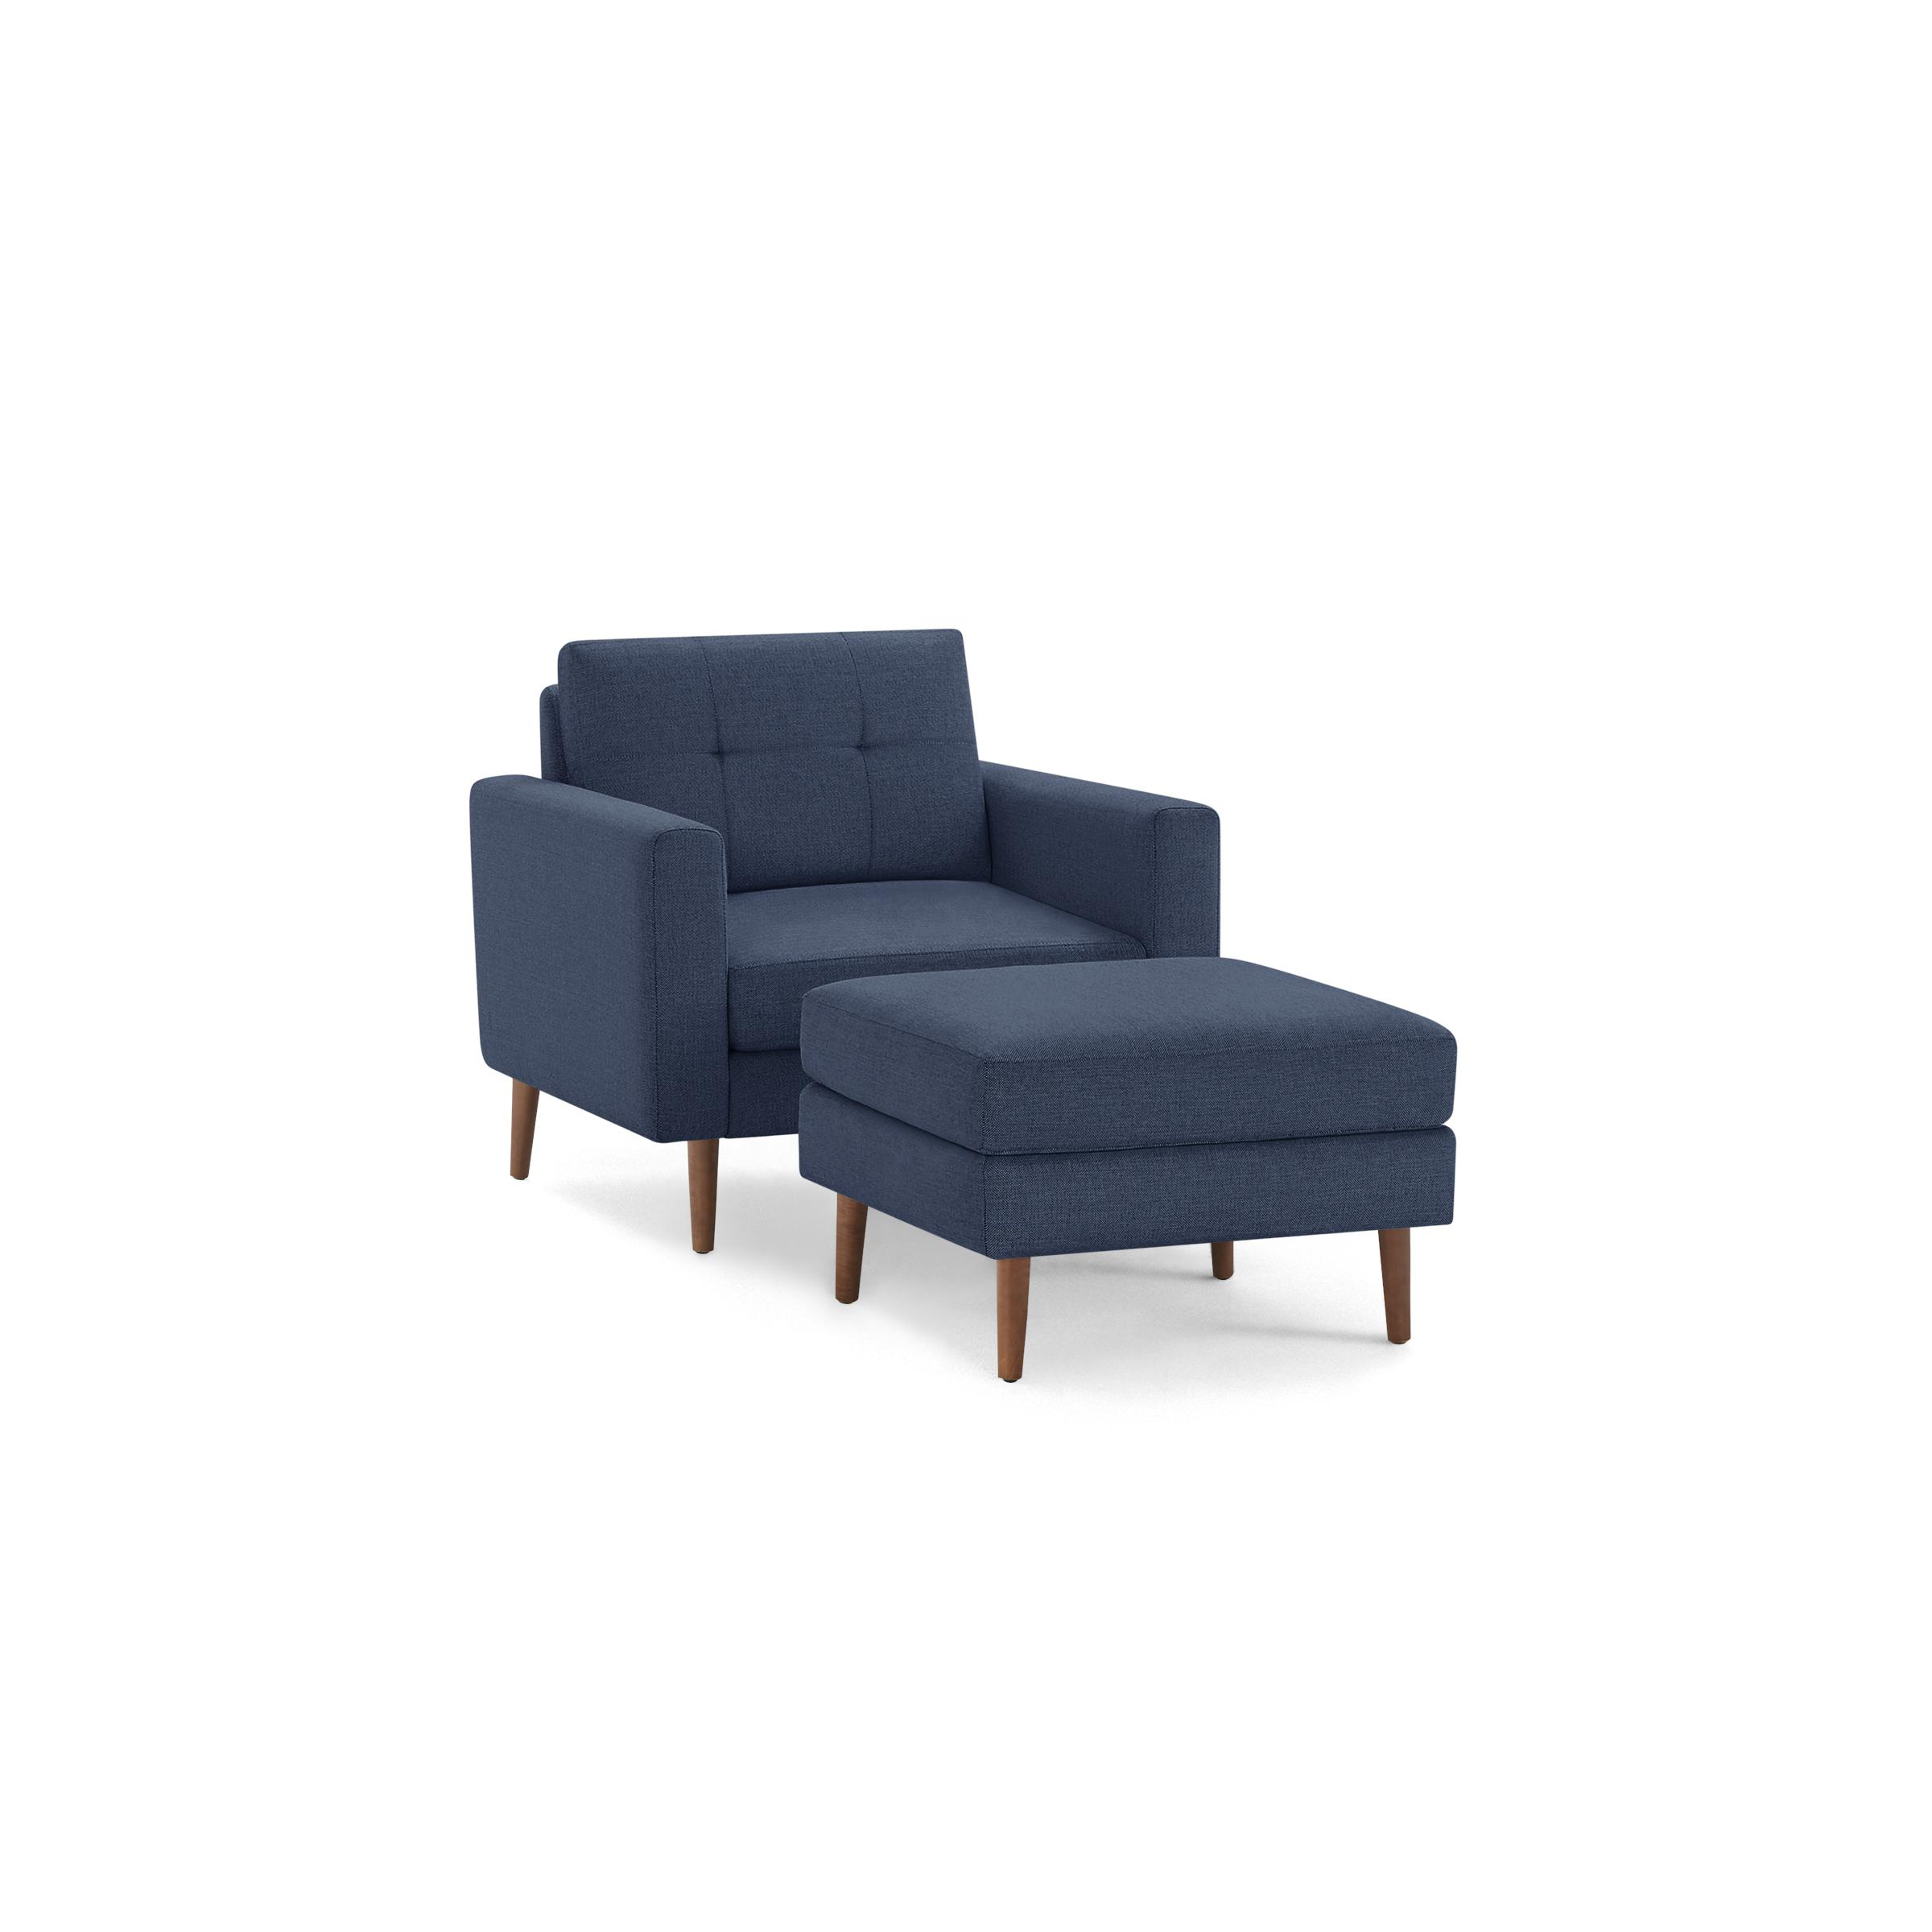 The Block Nomad Armchair with Ottoman in Navy Blue, Walnut Legs